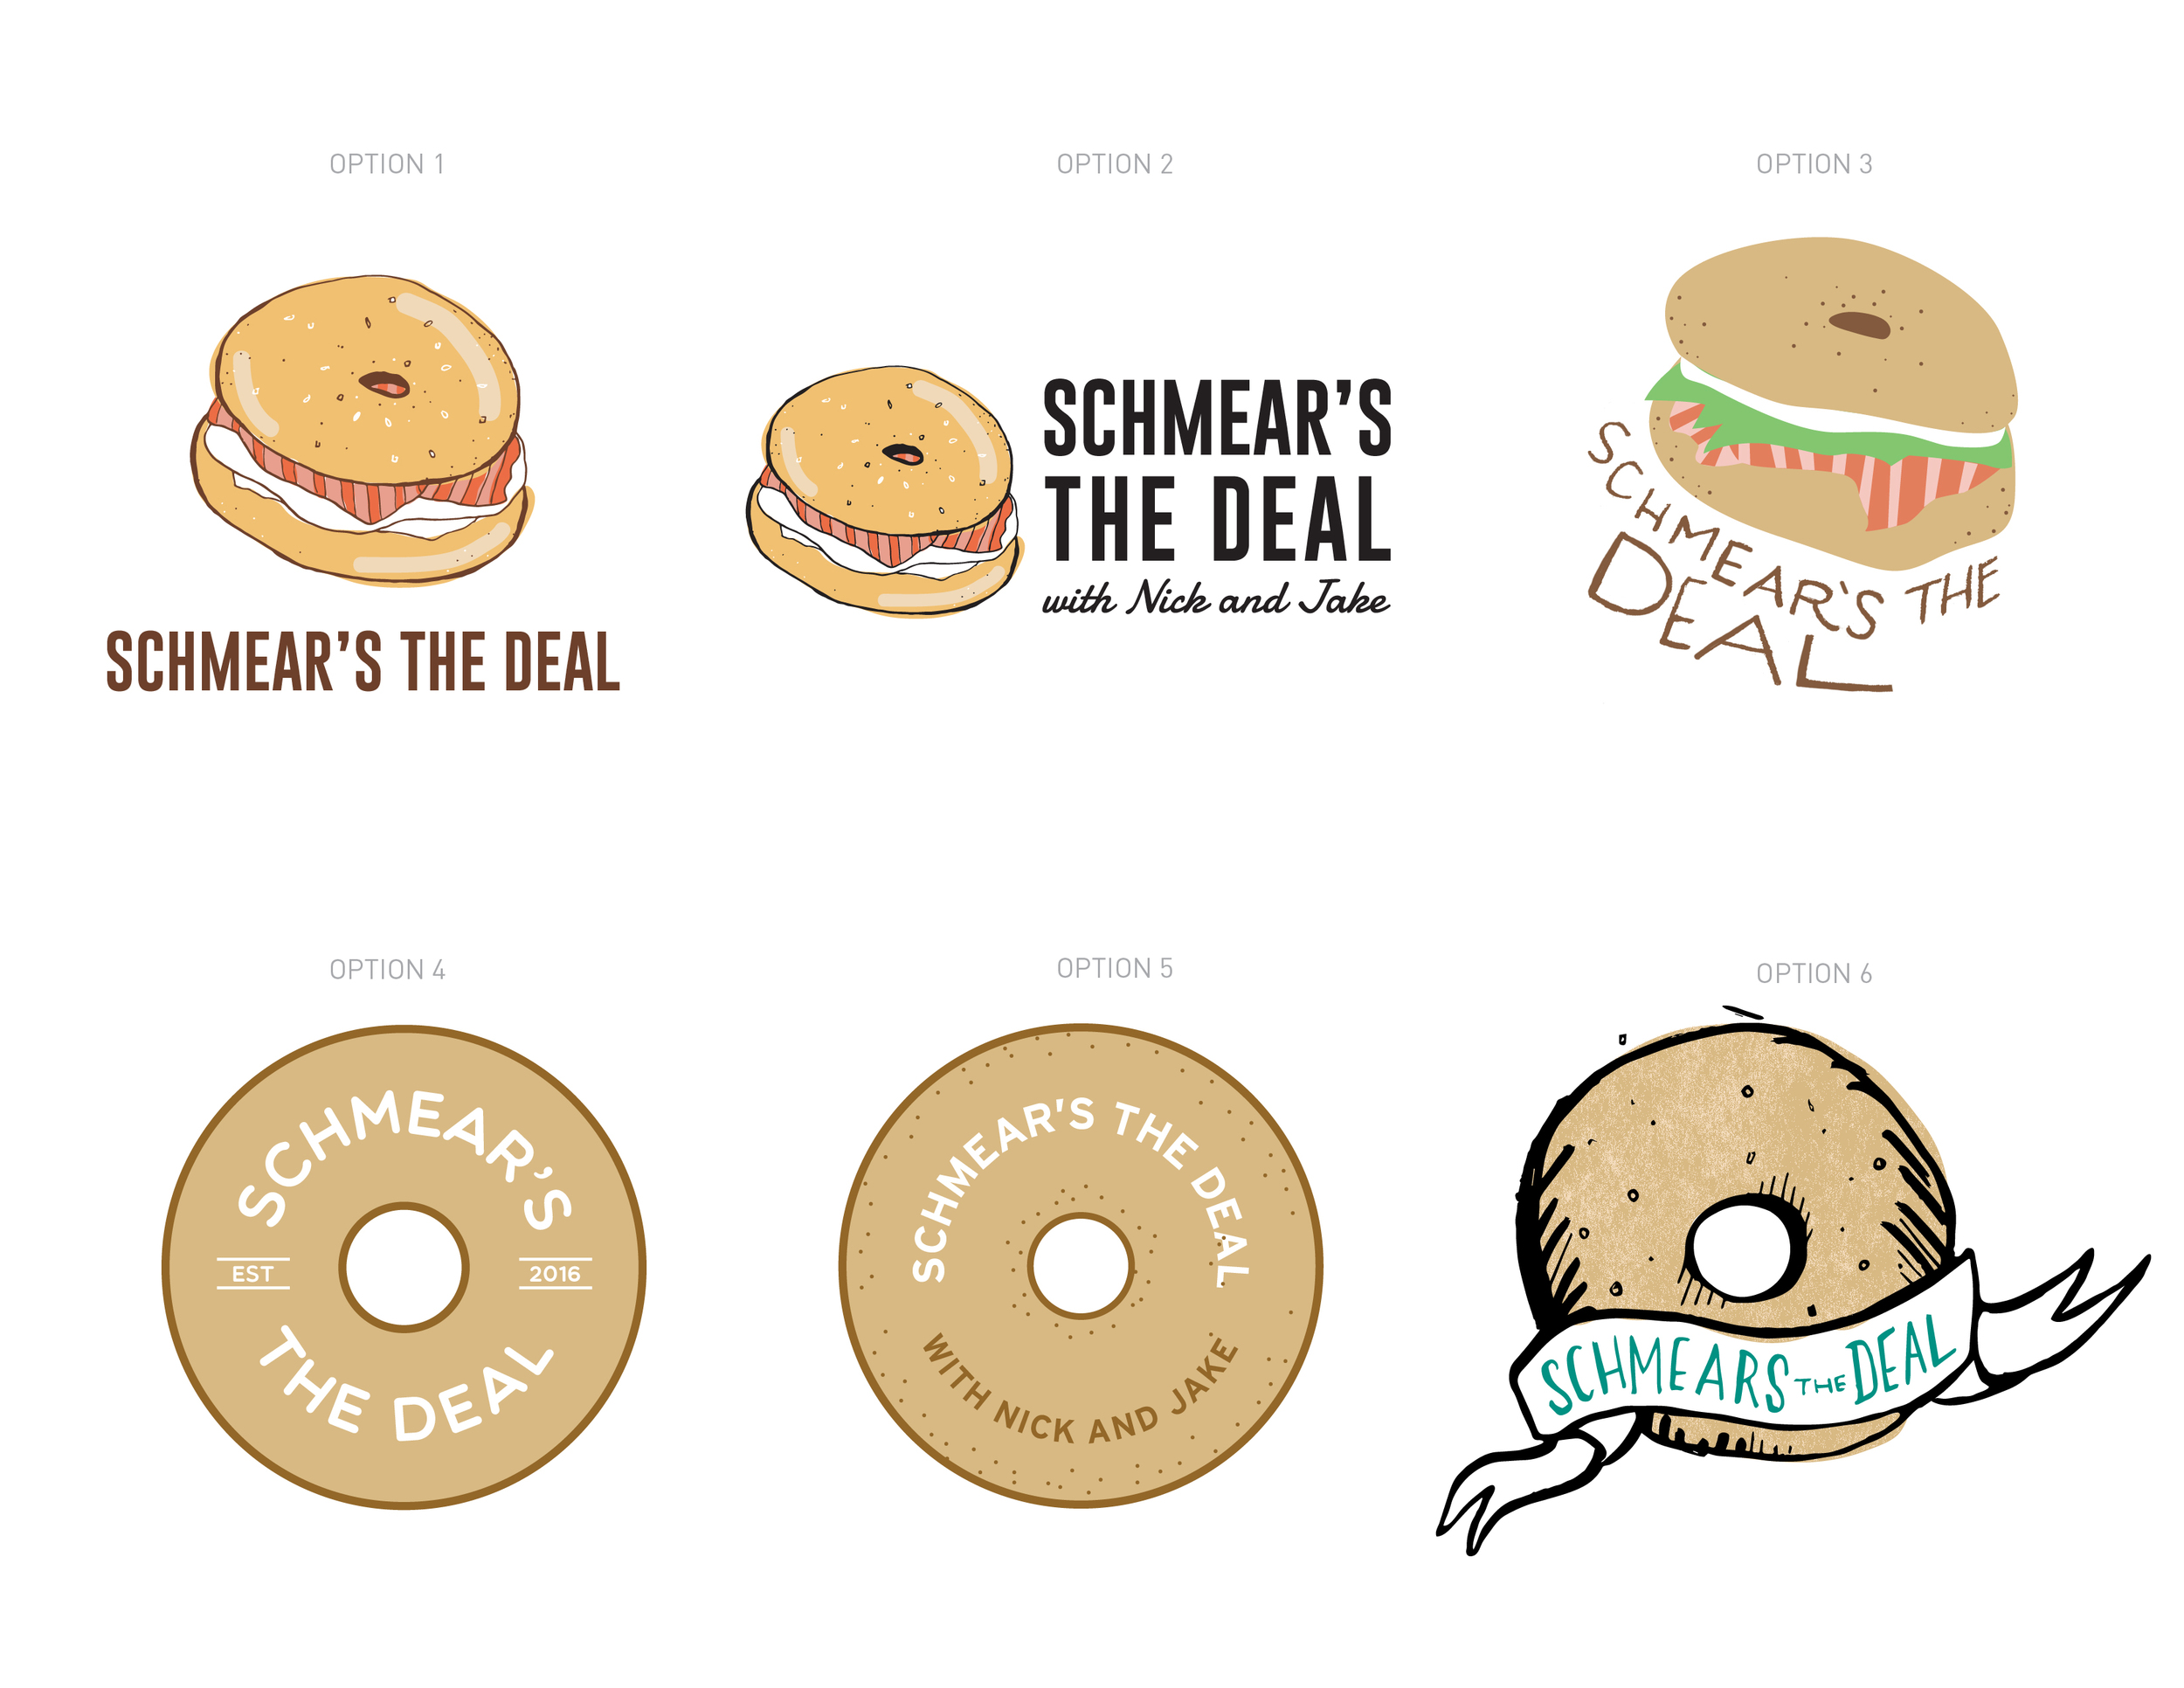 schmears the deal_revised-01.jpg